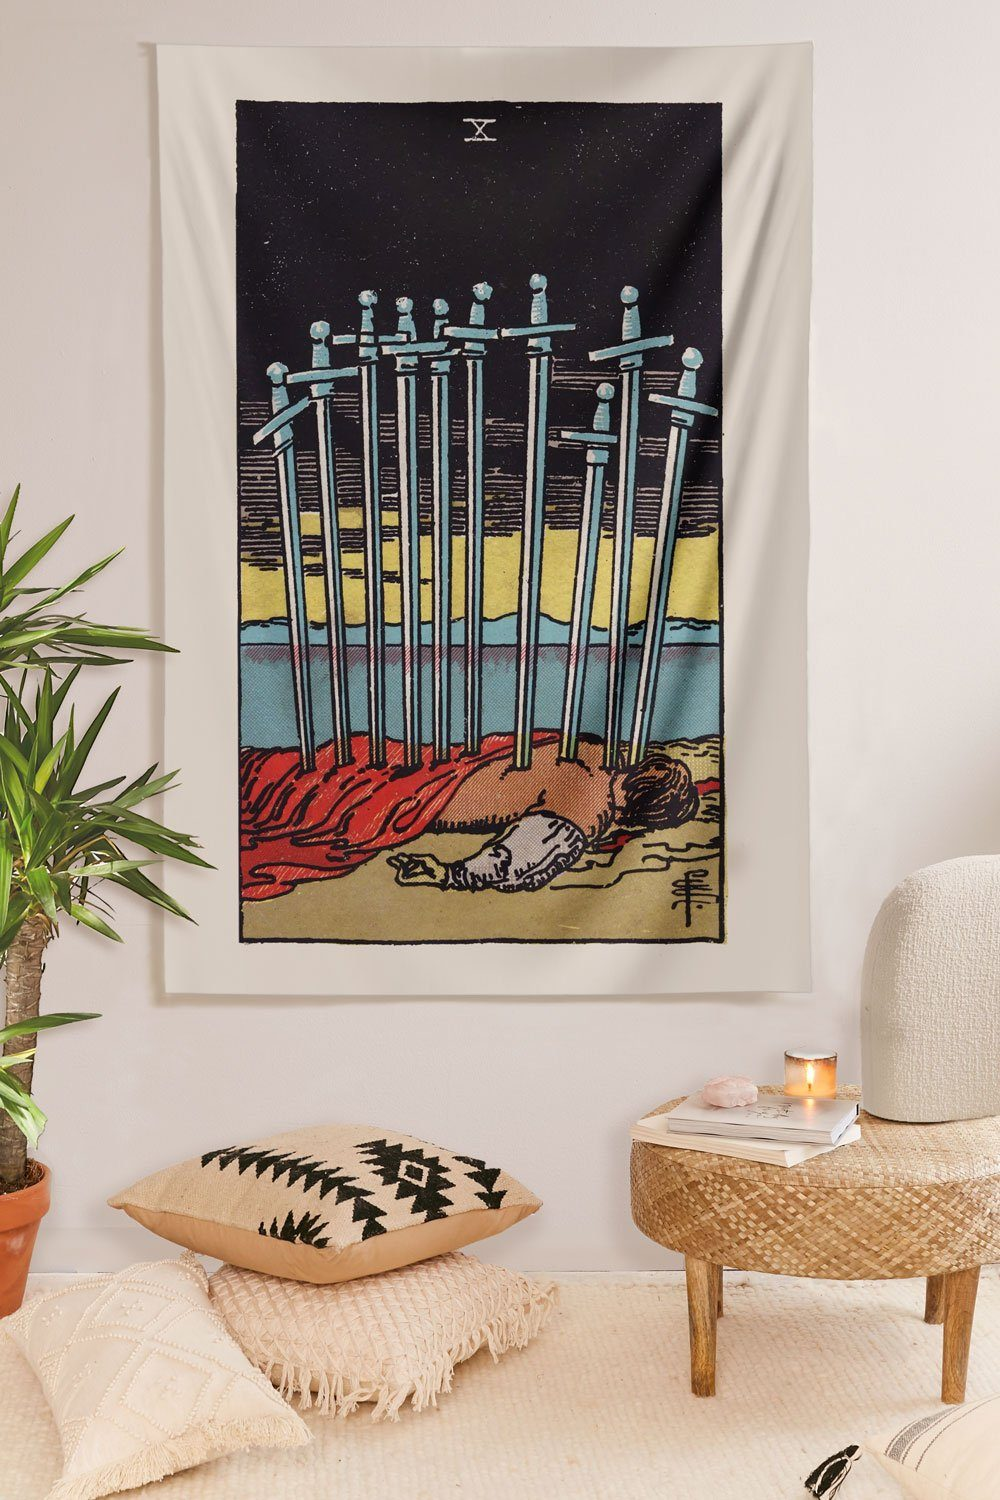 10 of Swords Tapestry tapestry NirvanaThreads